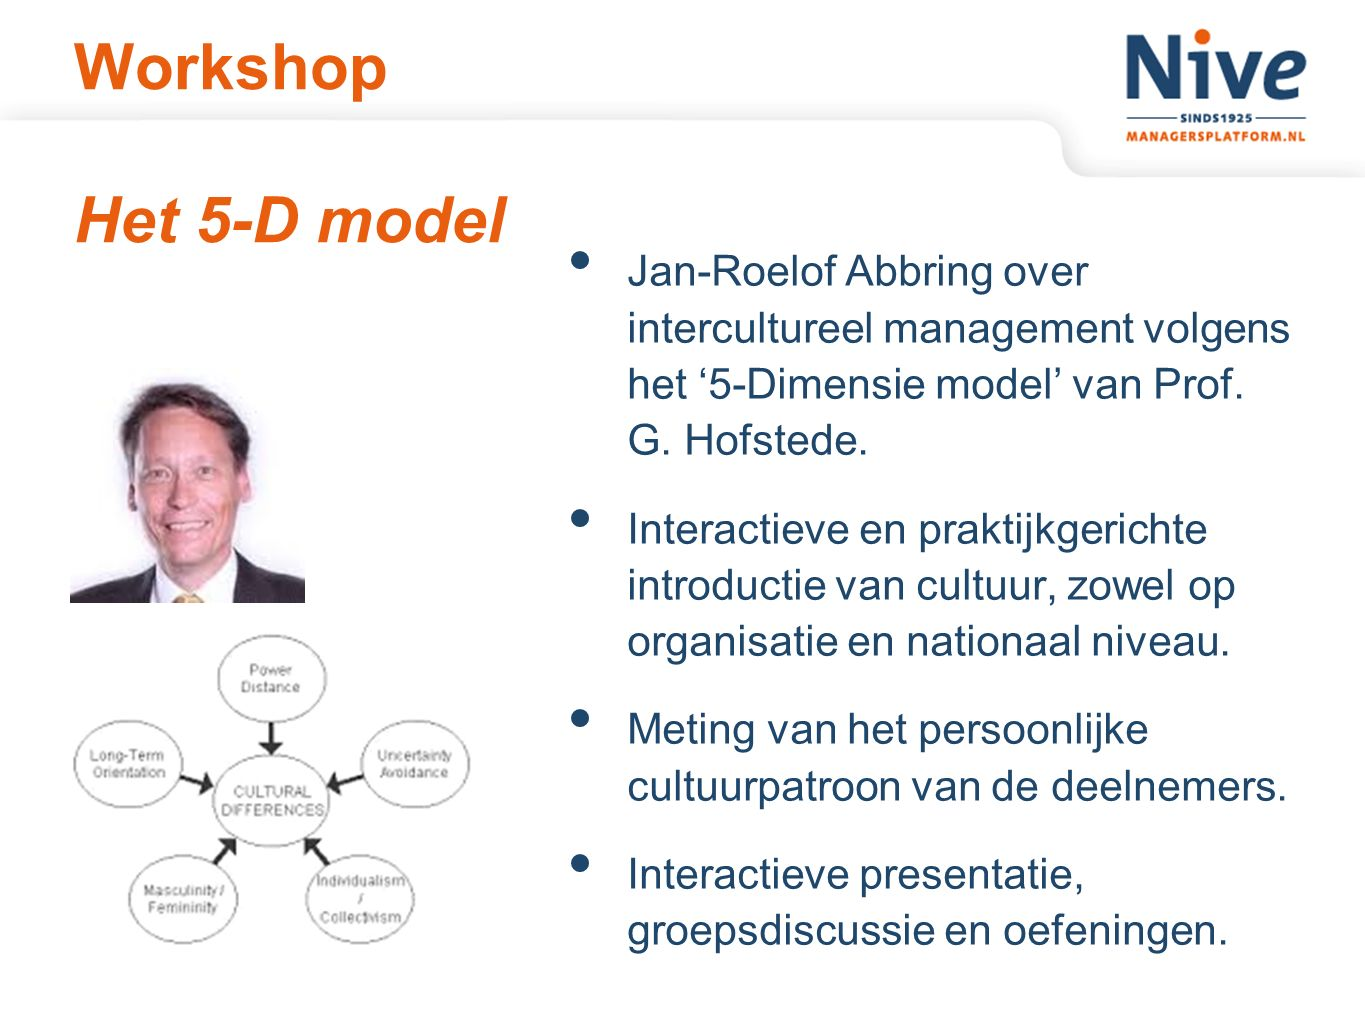 Workshop Het 5-D model Jan-Roelof Abbring over intercultureel management volgens het '5-Dimensie model' van Prof. G. Hofstede. Interactieve en praktij